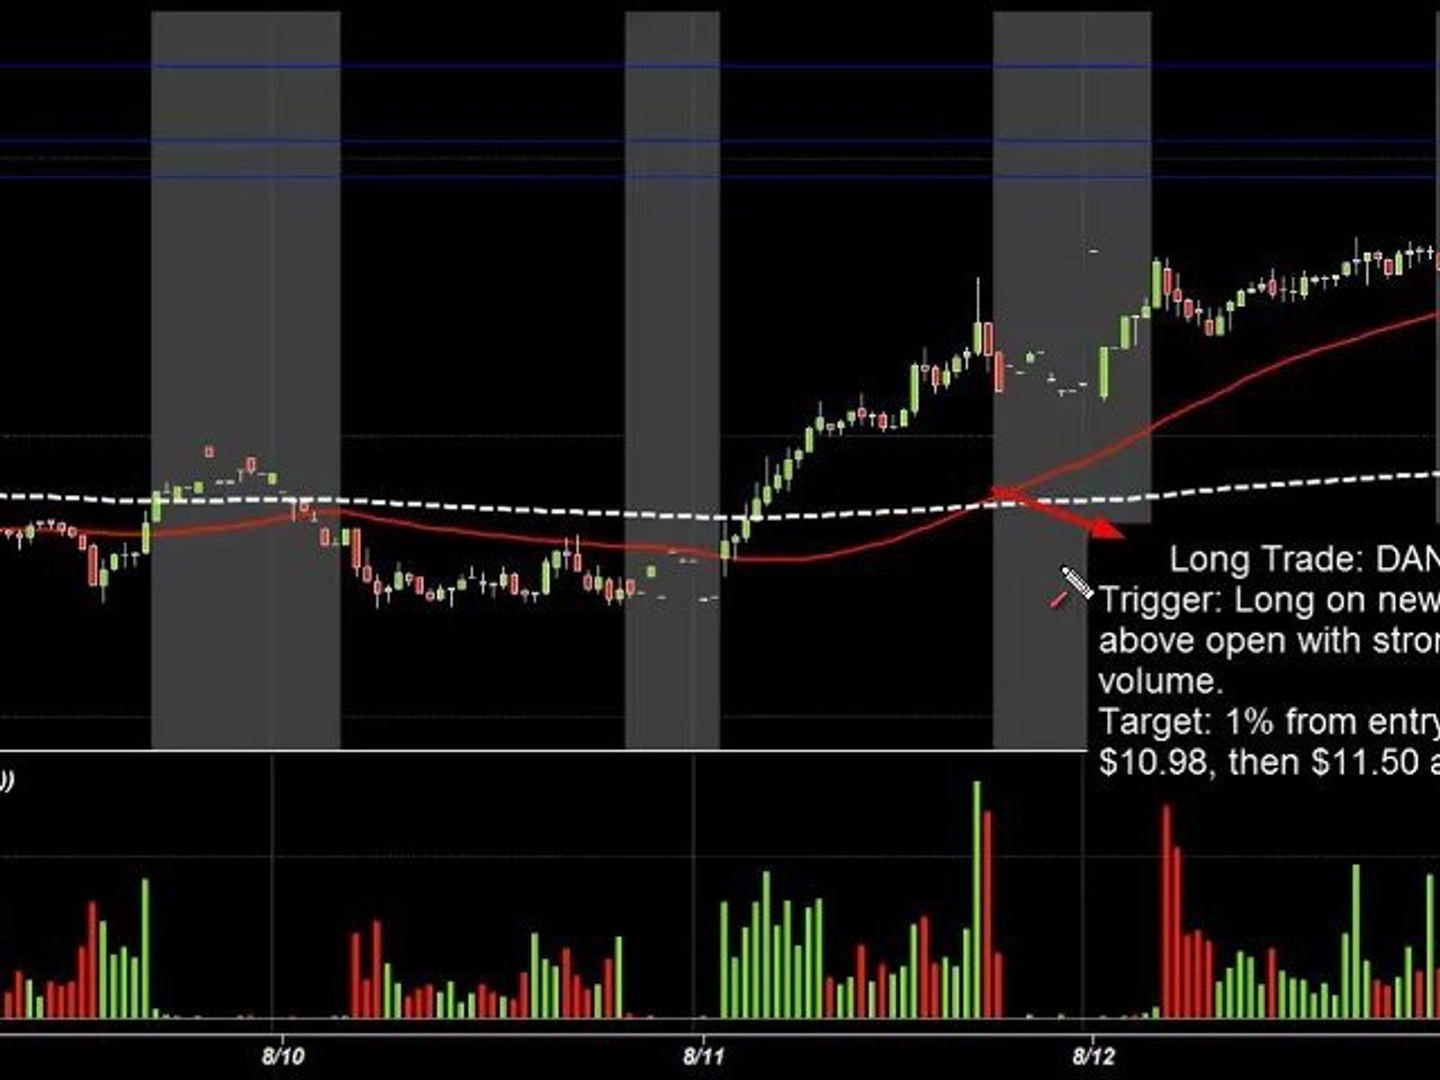 Stock Trade Review for the 8/15/2011 Trading Session: Free Pre-Market Stock Report